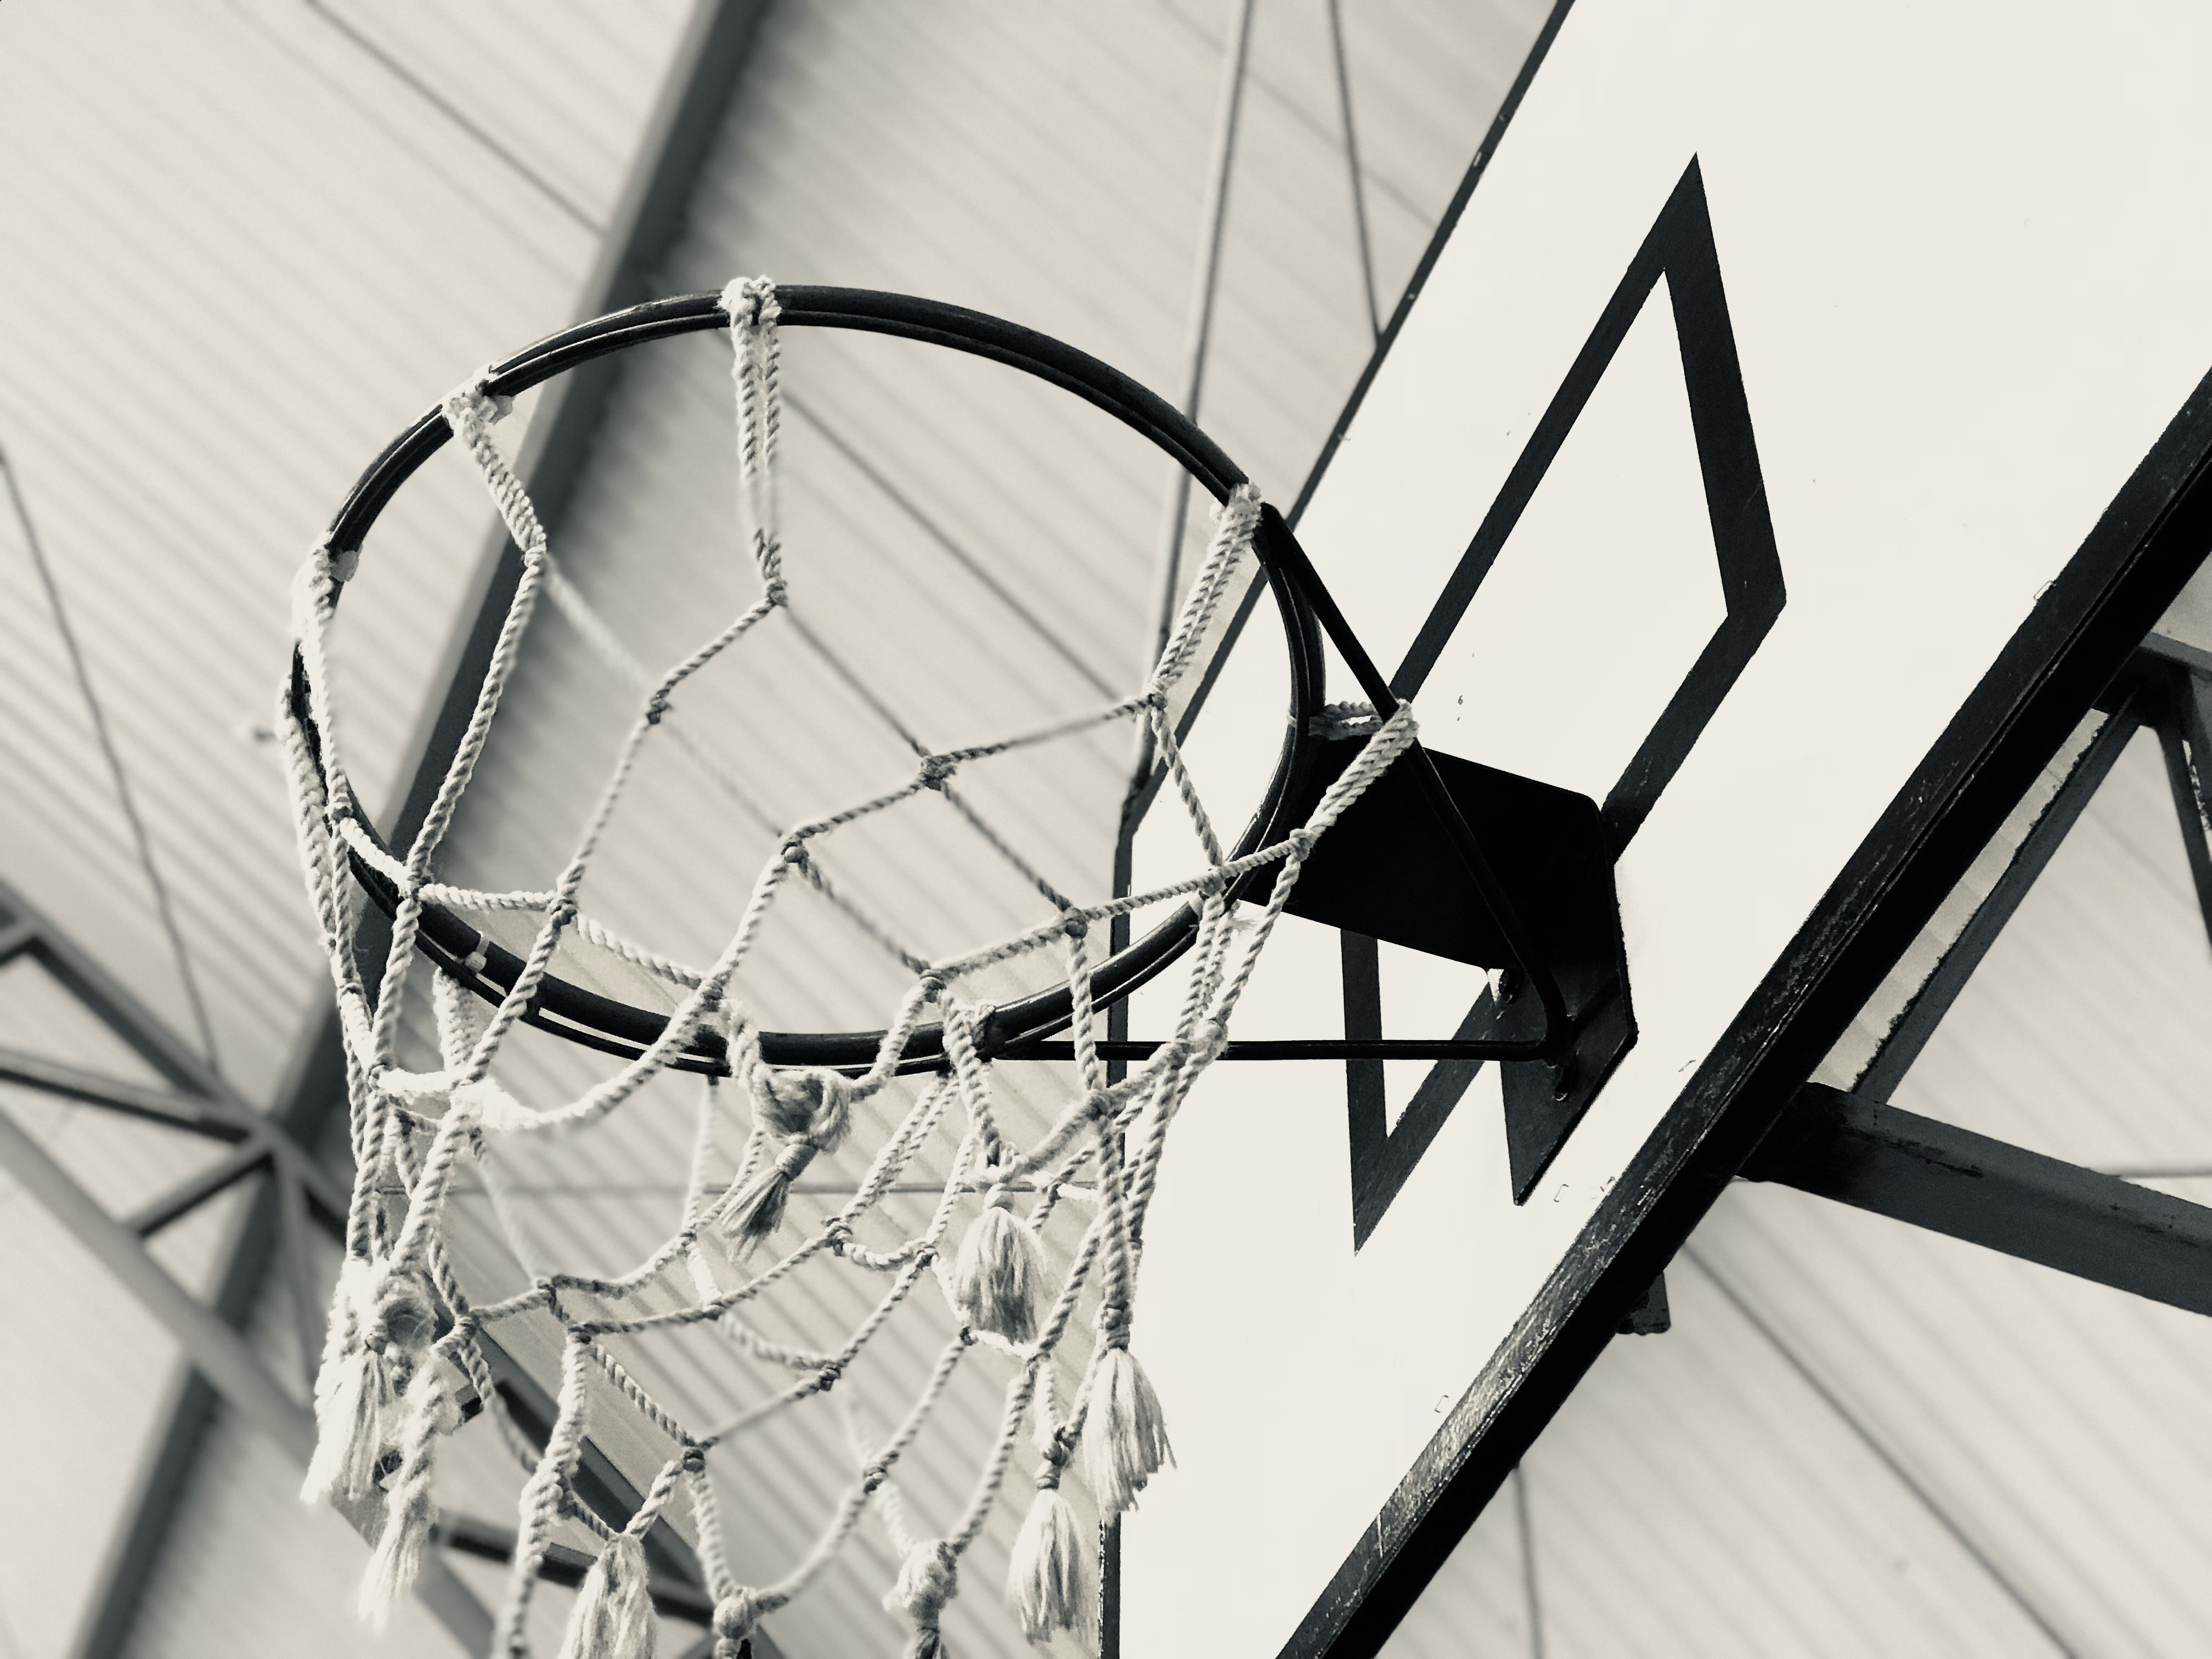 grayscale photography of basketball hoop